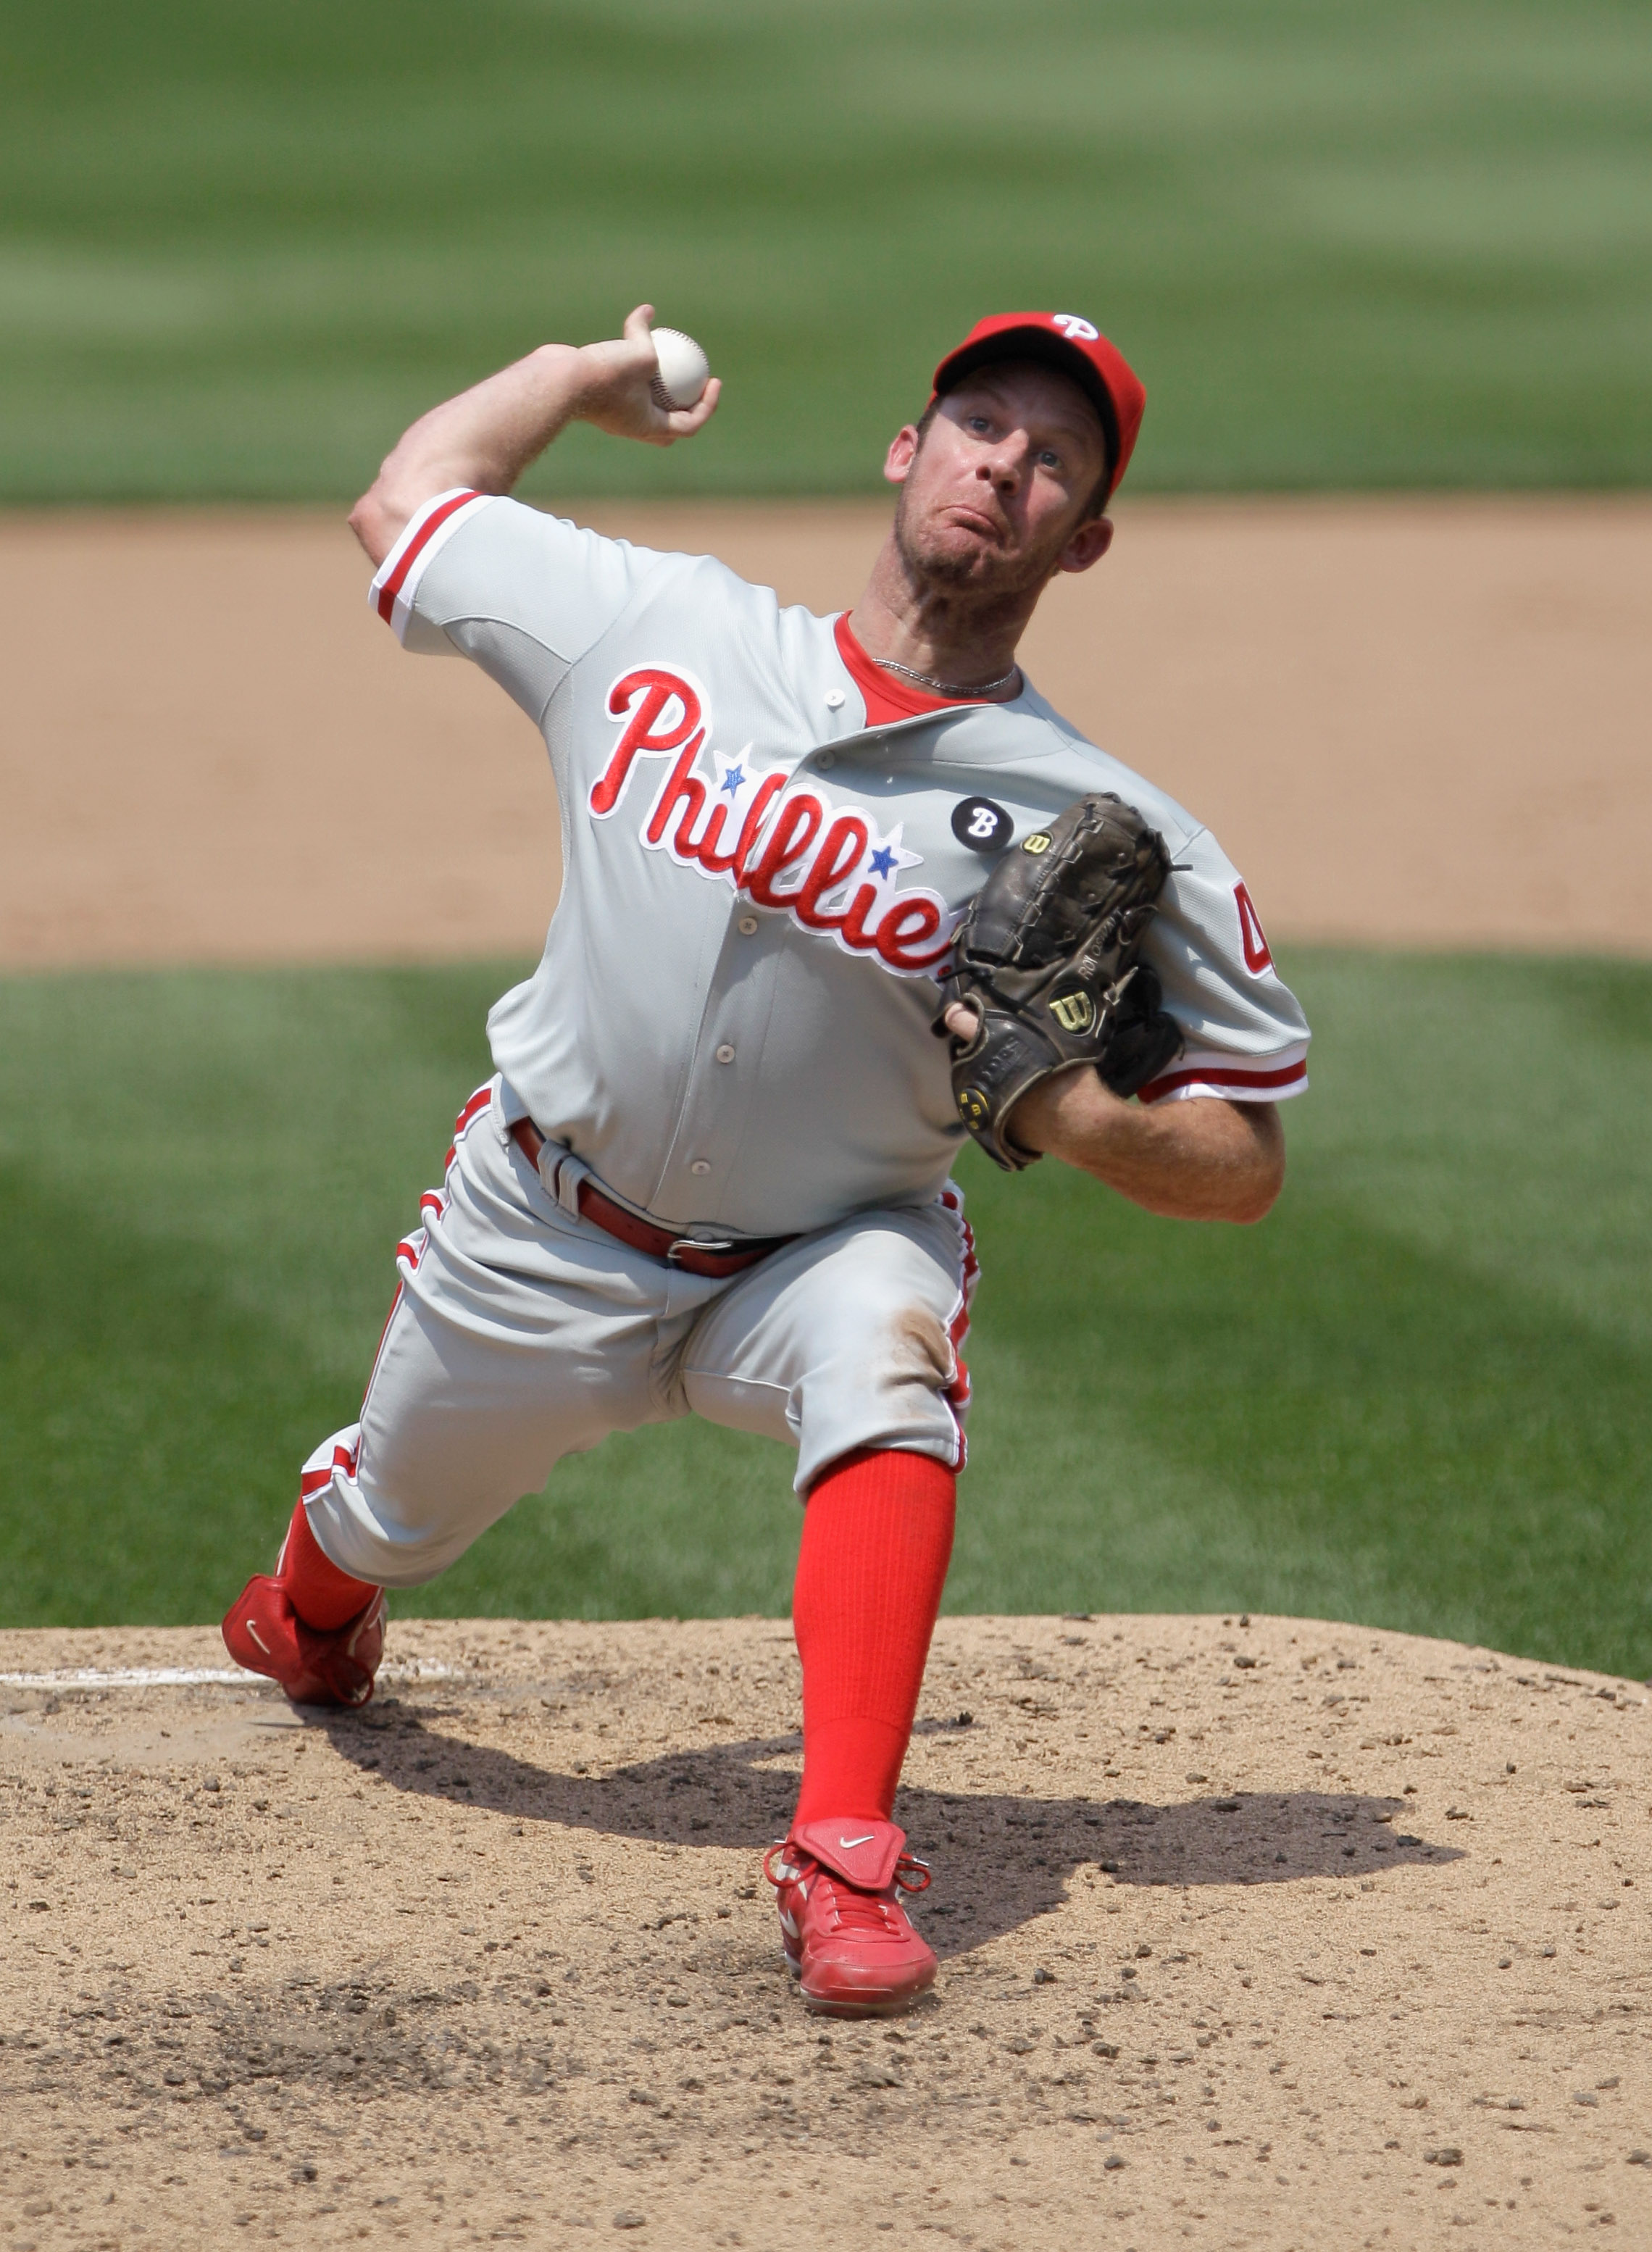 WASHINGTON, DC - JUNE 01:  Starting pitcher Roy Oswalt #44 of the Philadelphia Phillies delivers to a Philadelphia Phillies batter during the fifth inning at Nationals Park on June 1, 2011 in Washington, DC.  (Photo by Rob Carr/Getty Images)